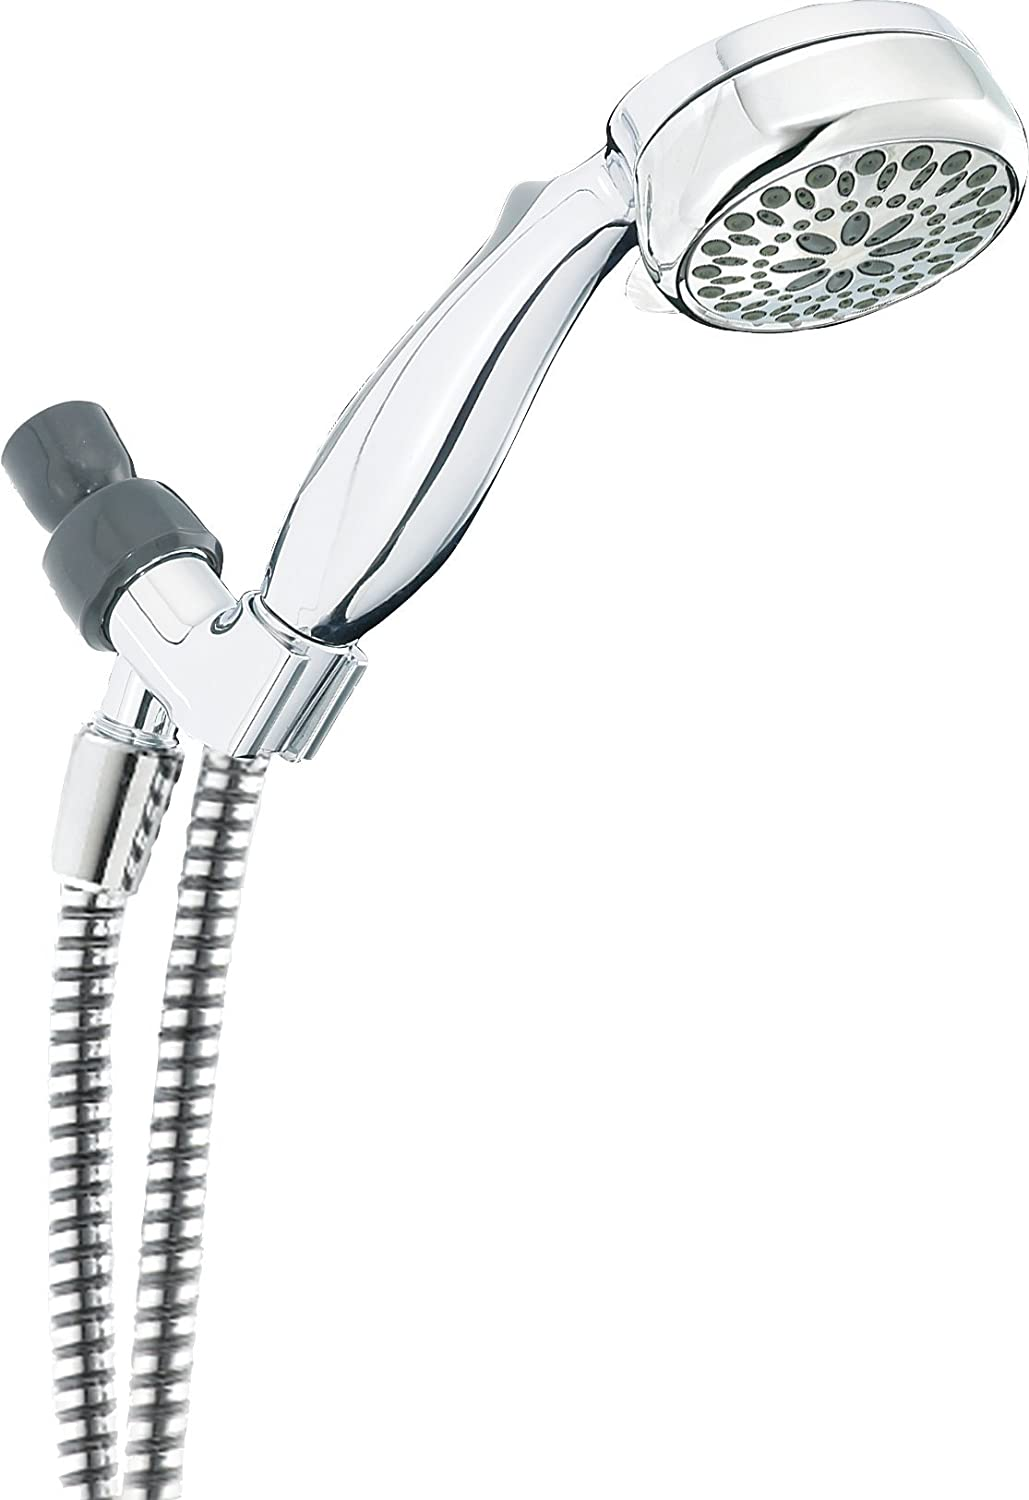 Genial Delta 7 Spray Touch Clean Hand Held Shower Head With Hose, Chrome (75700)    Hand Held Showerheads   Amazon.com